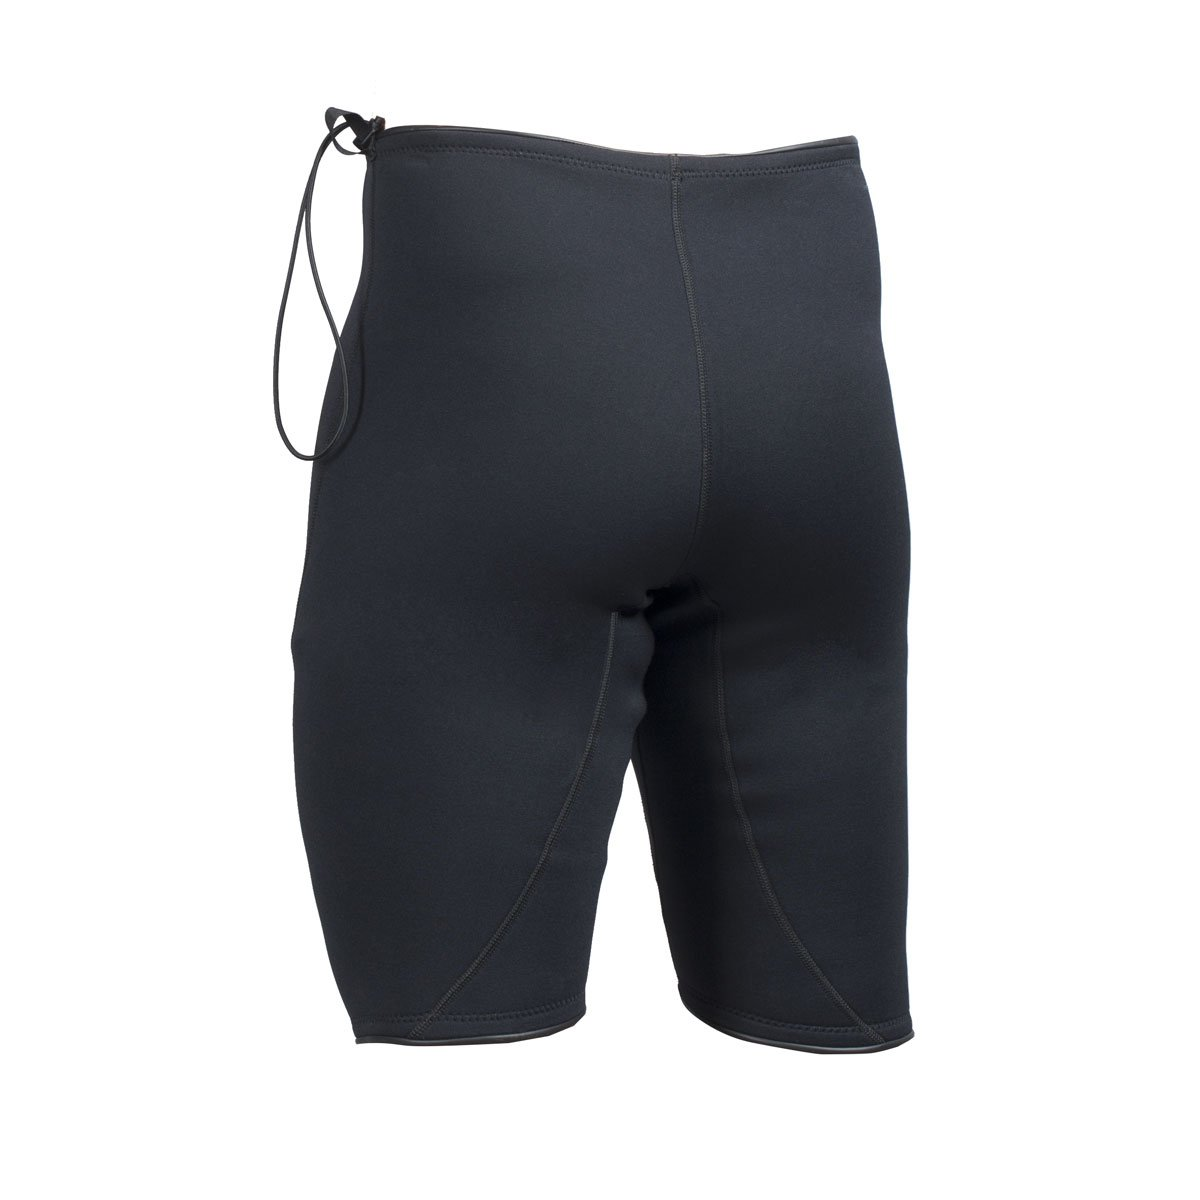 Gul Response 2mm Neoprene Shorts Re8302-A6